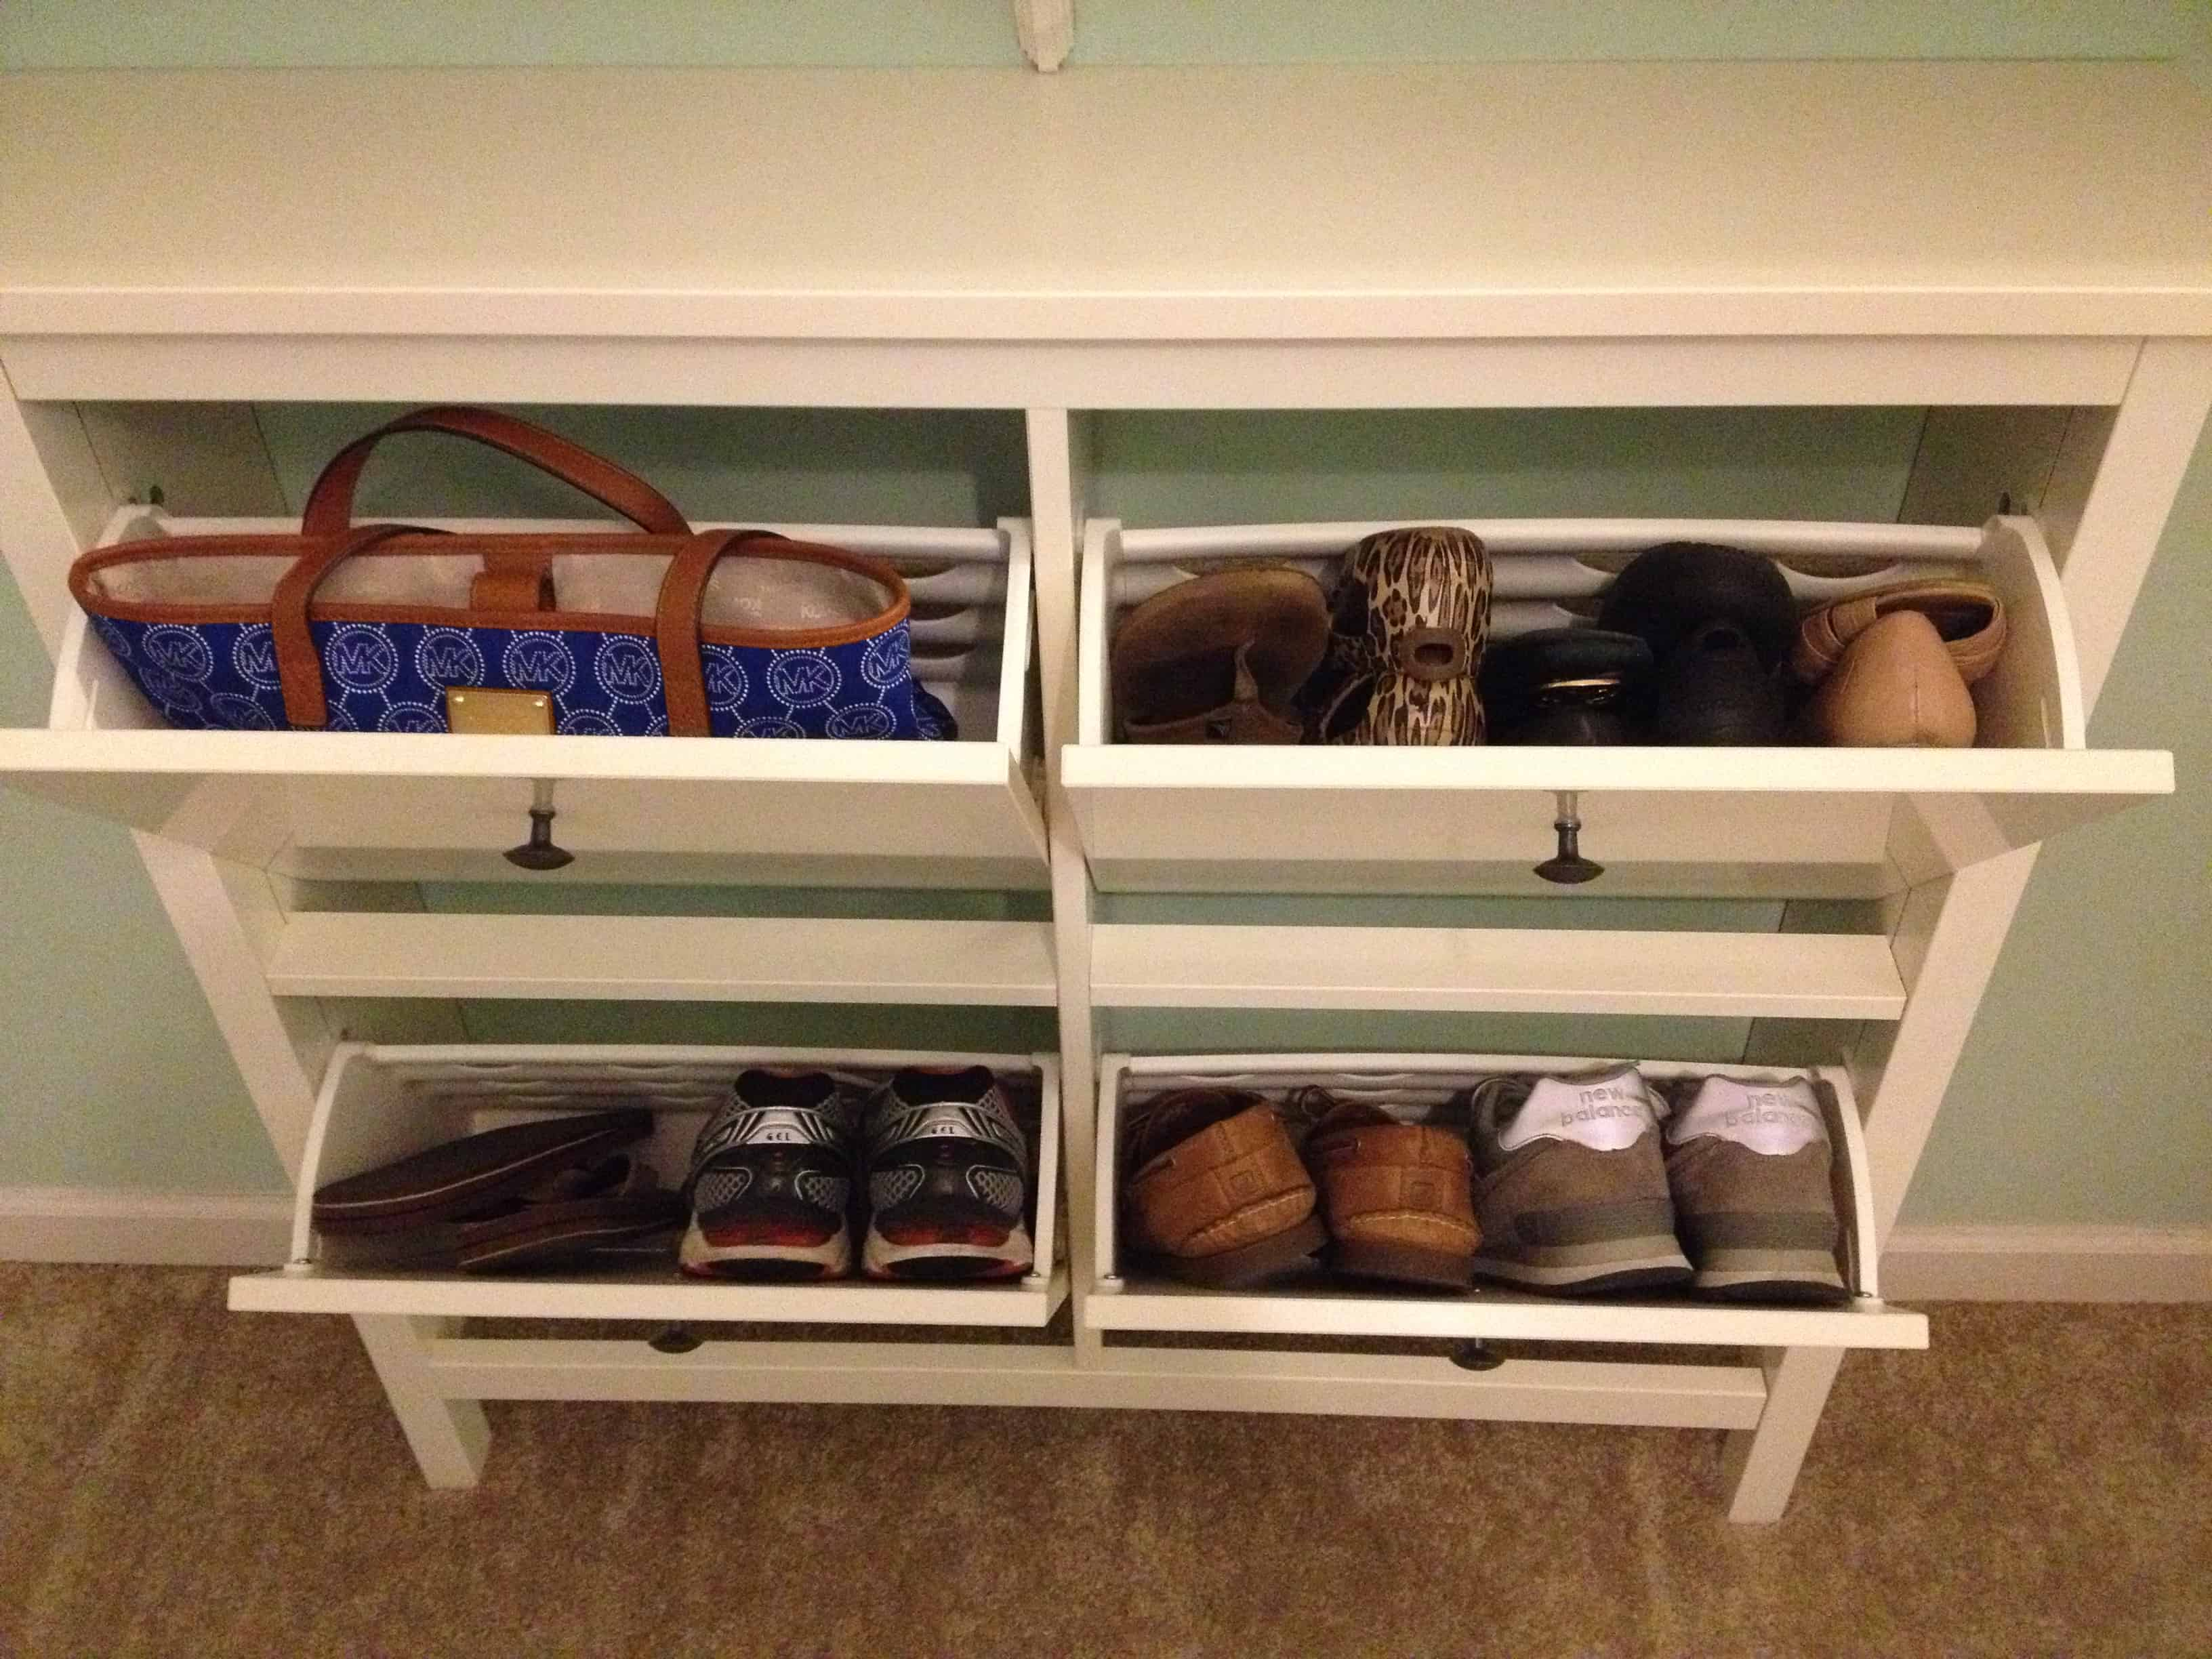 Easy DIY Shoe Rack Ideas You Can Build on a Budget - Brilliant peg rack for shoe storage Building a DIY shoe rack can be the perfect solution to store your shoes in limited space when you don't have enough room for bulky cabinets. Here are over 60 great project ideas that .